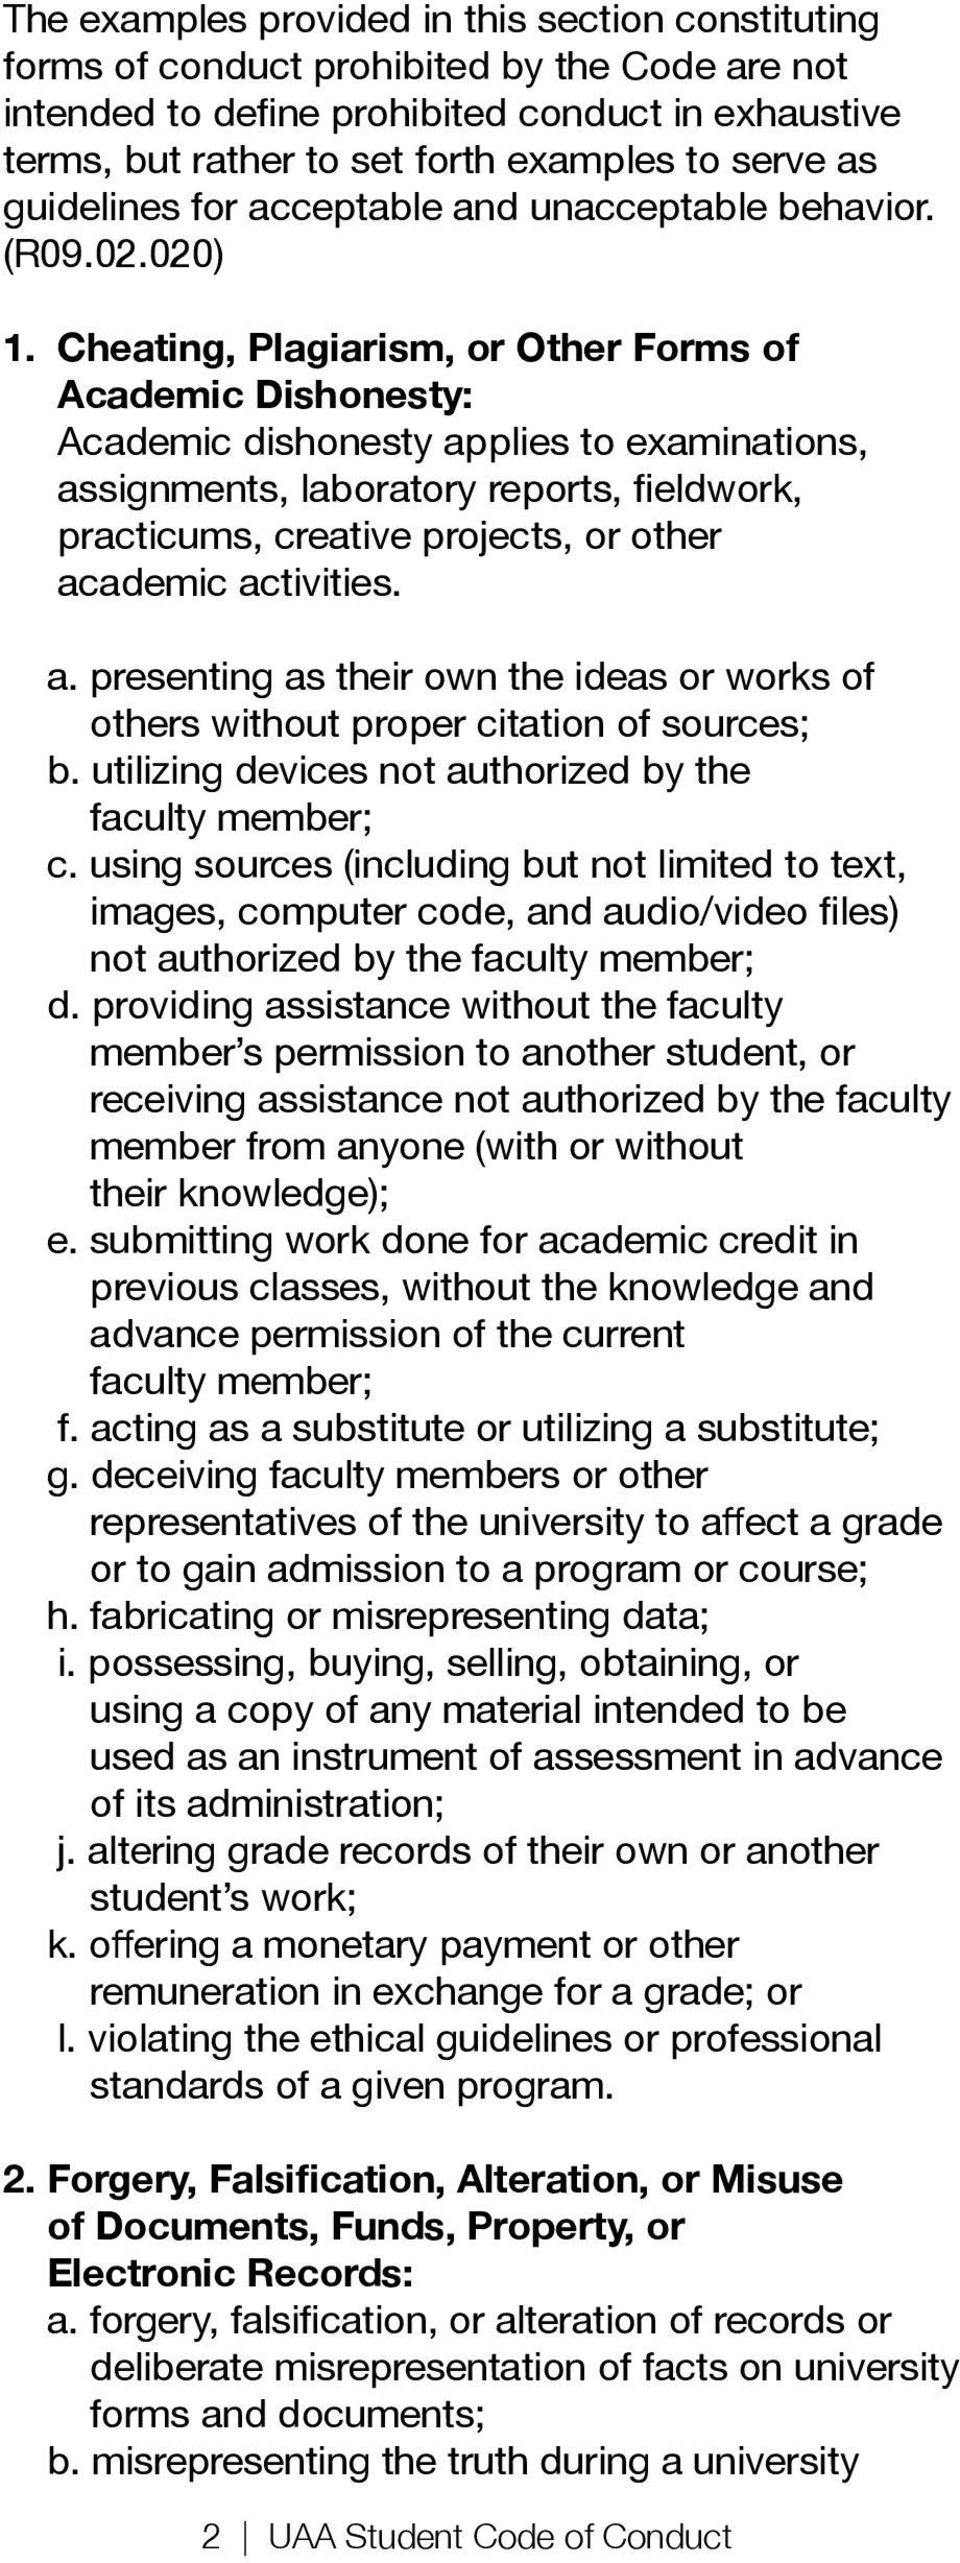 of the current faculty member; or to gain admission to a program or course; using a copy of any material intended to be used as an